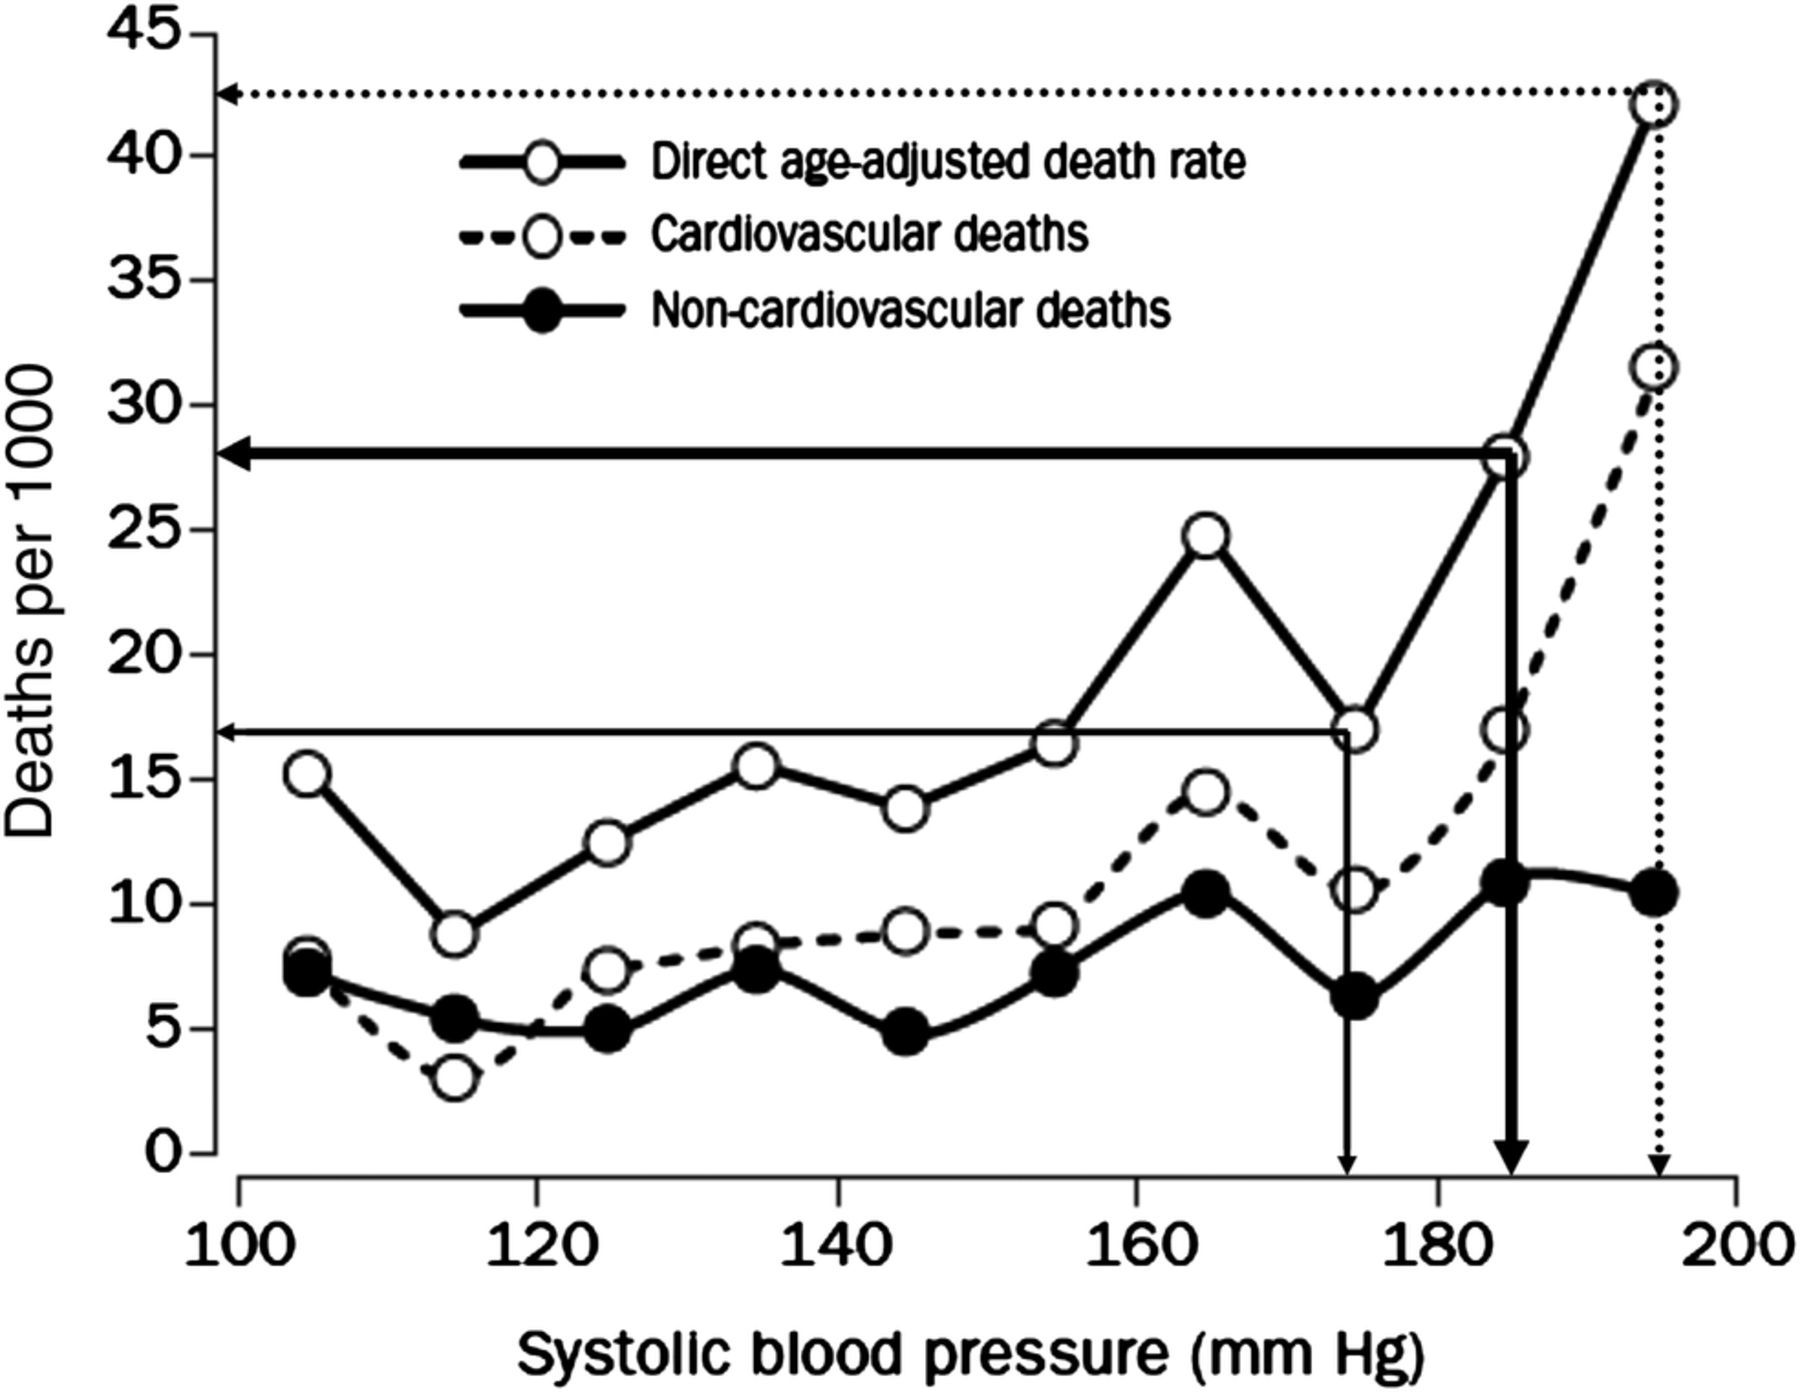 Hypertension: empirical evidence and implications in 2014